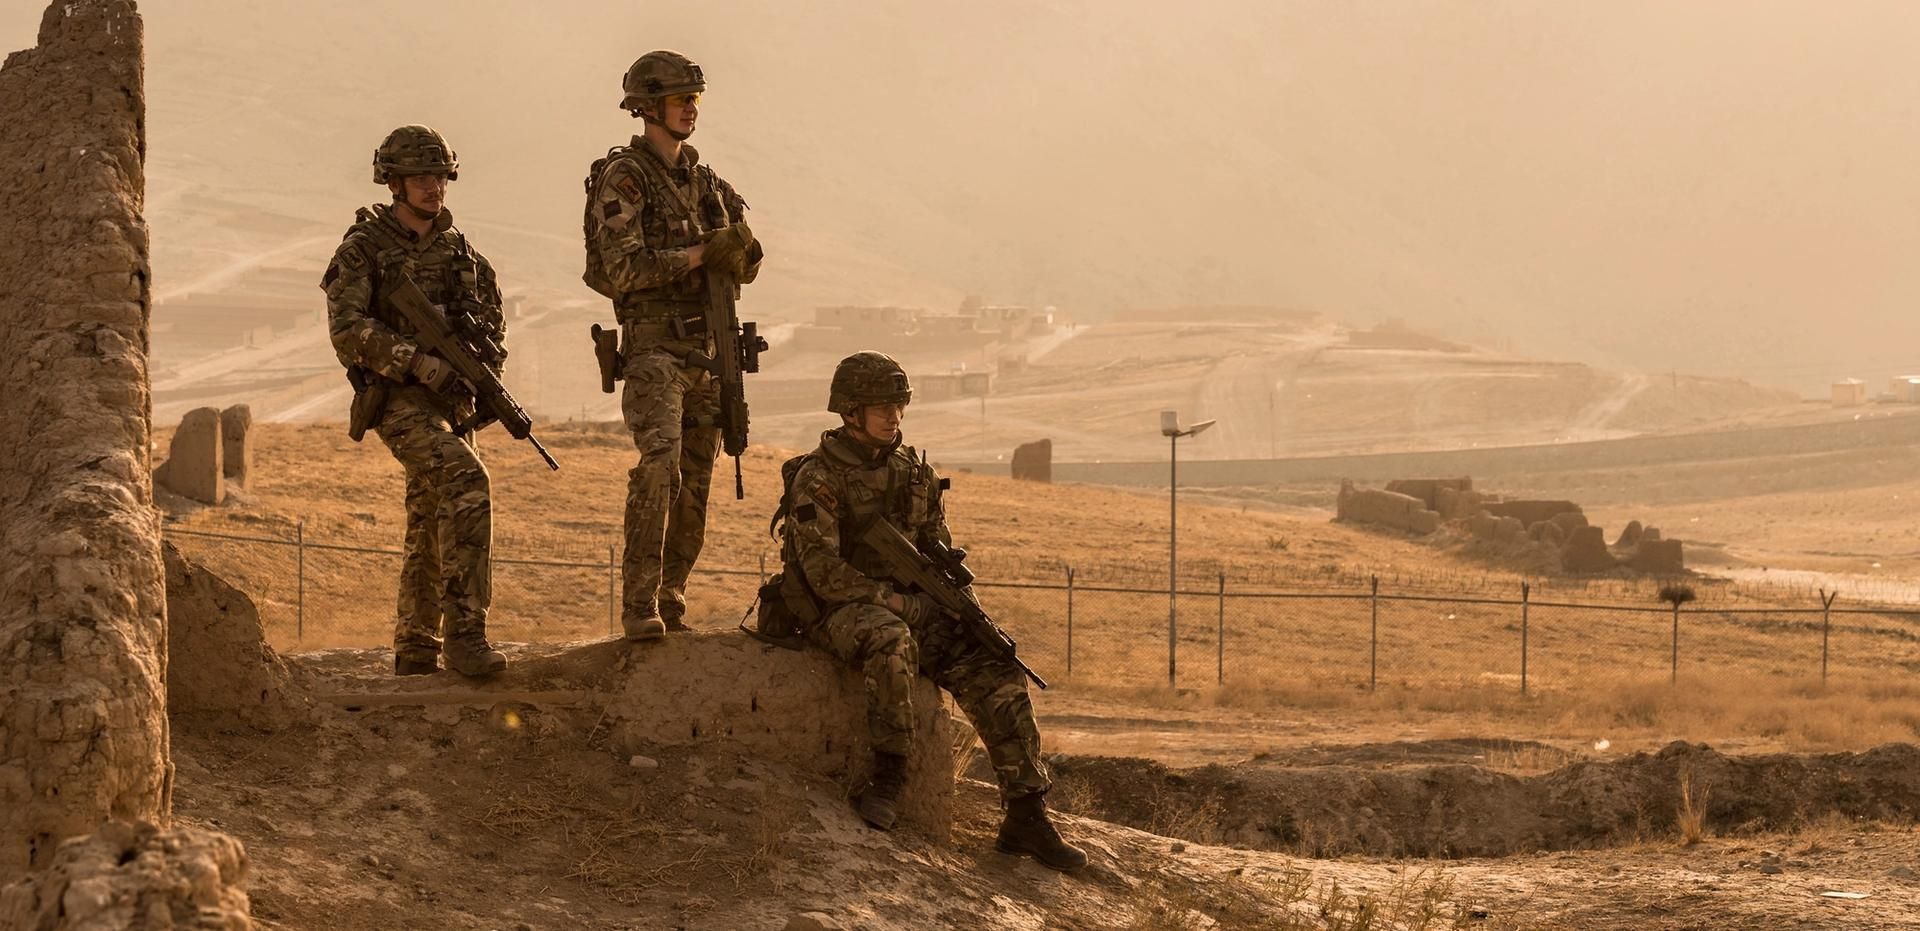 British Army forces stationed outside Kabul Courtesy of UK Ministry of Defence